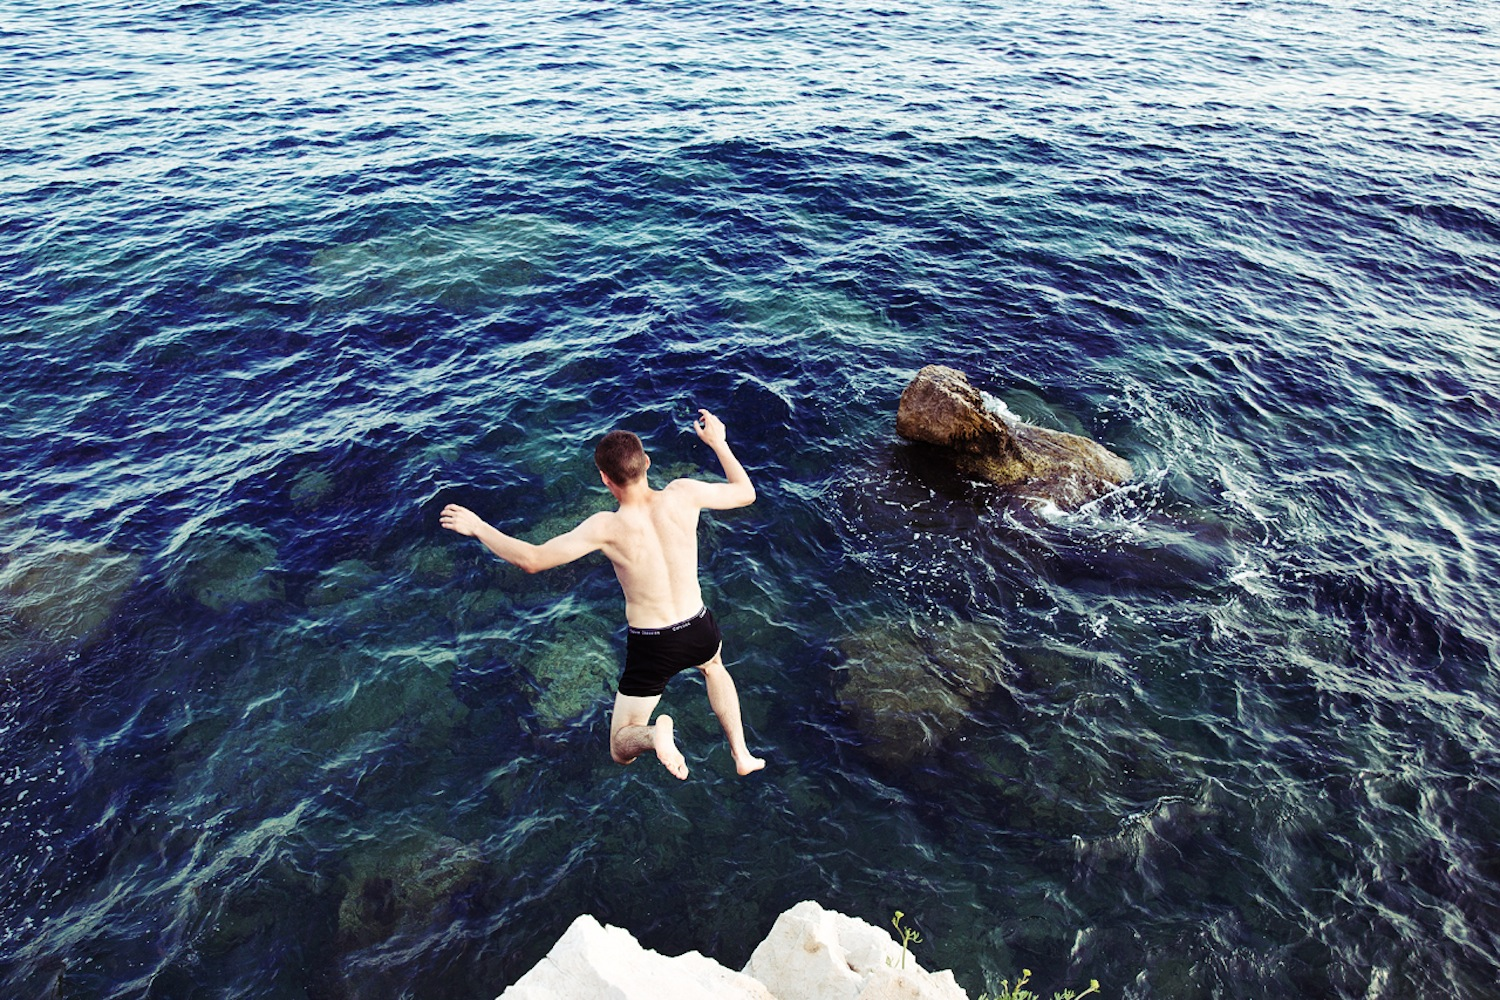 Life-of-Pix-free-stock-photos-jump-people-boy-sea-rock-back-EZE-Joshua-earle